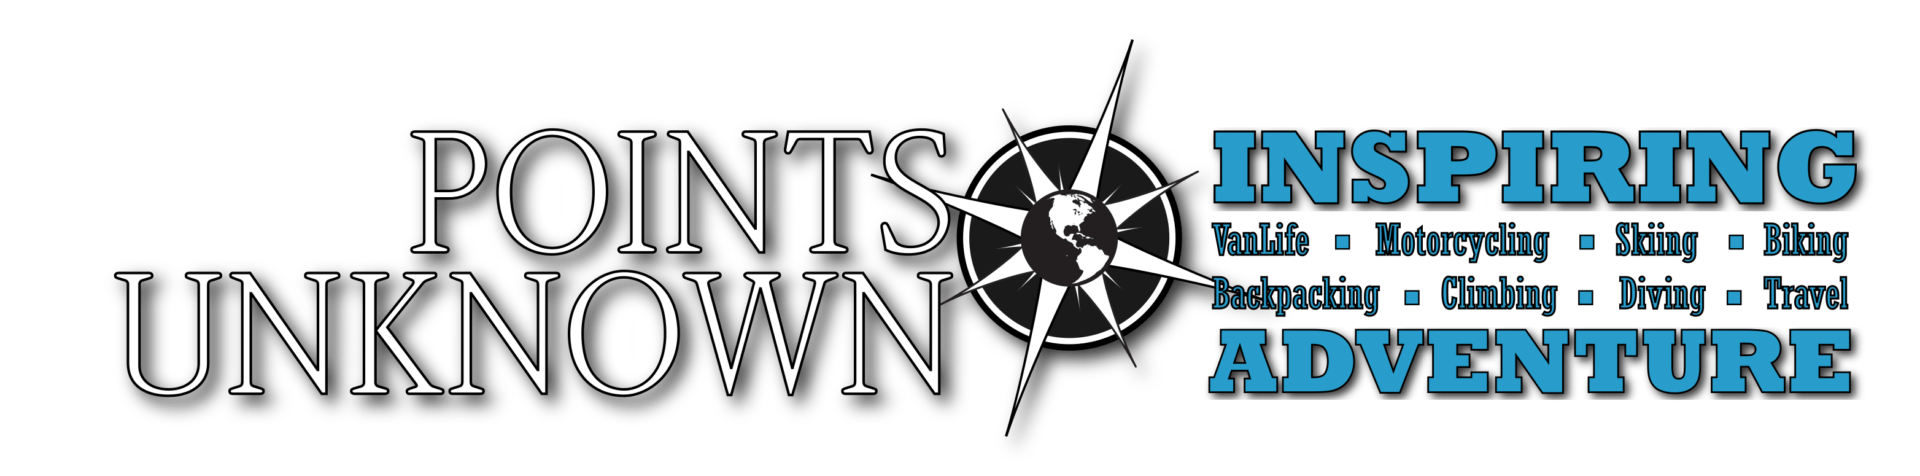 Points Unknow - Inspiring Adventure